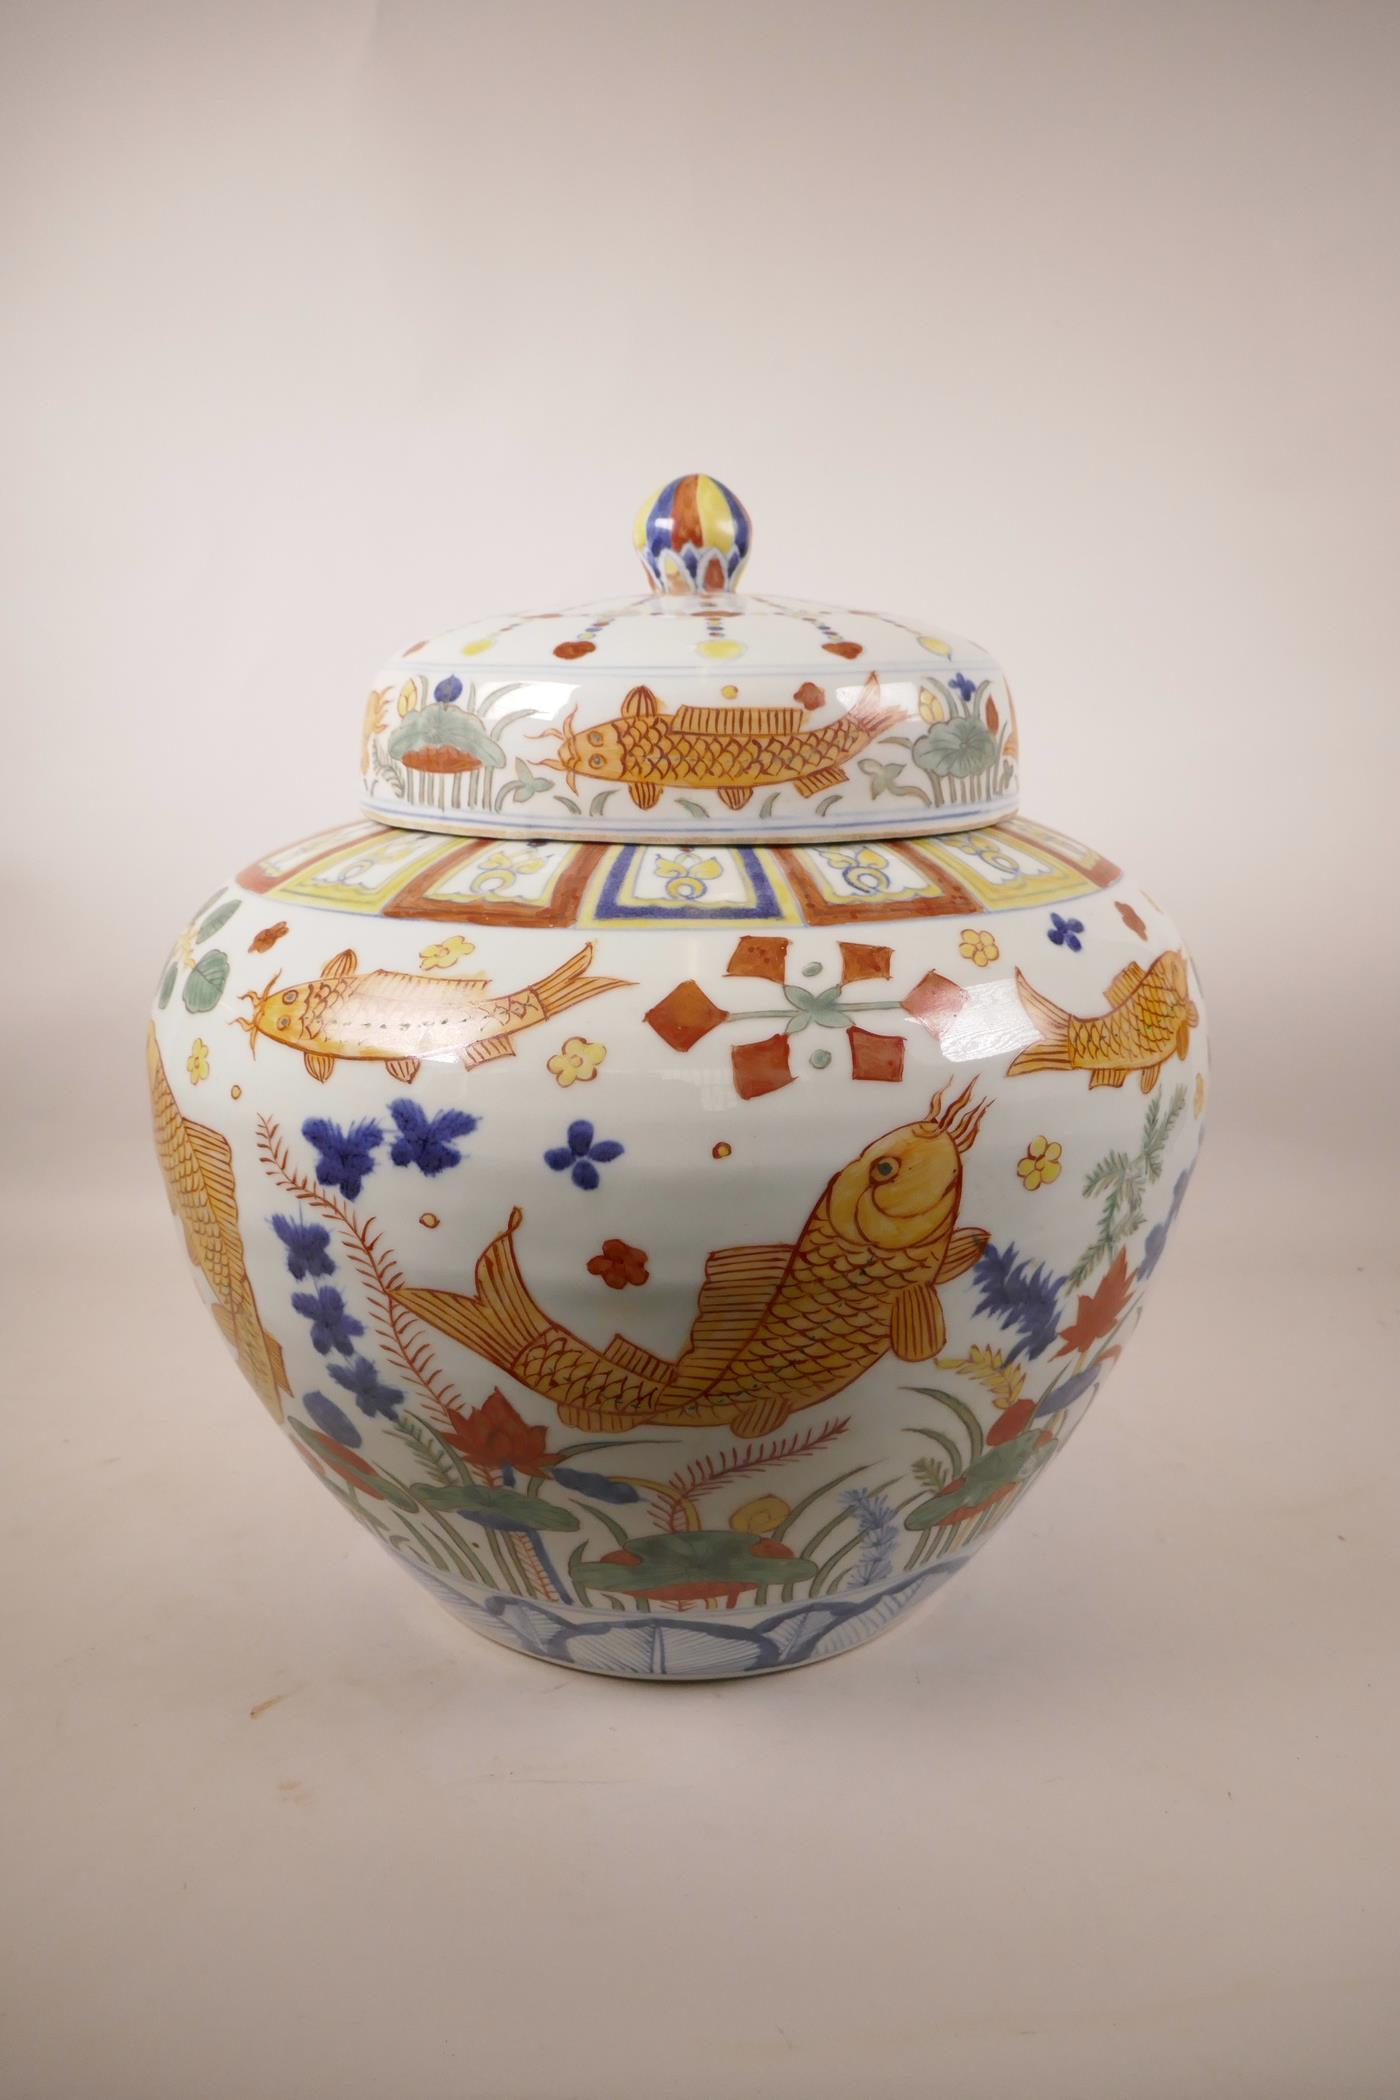 Lot 56 - A large Ming style wucai pottery jar and cover decorated with carp in a lotus pond, 6 character mark